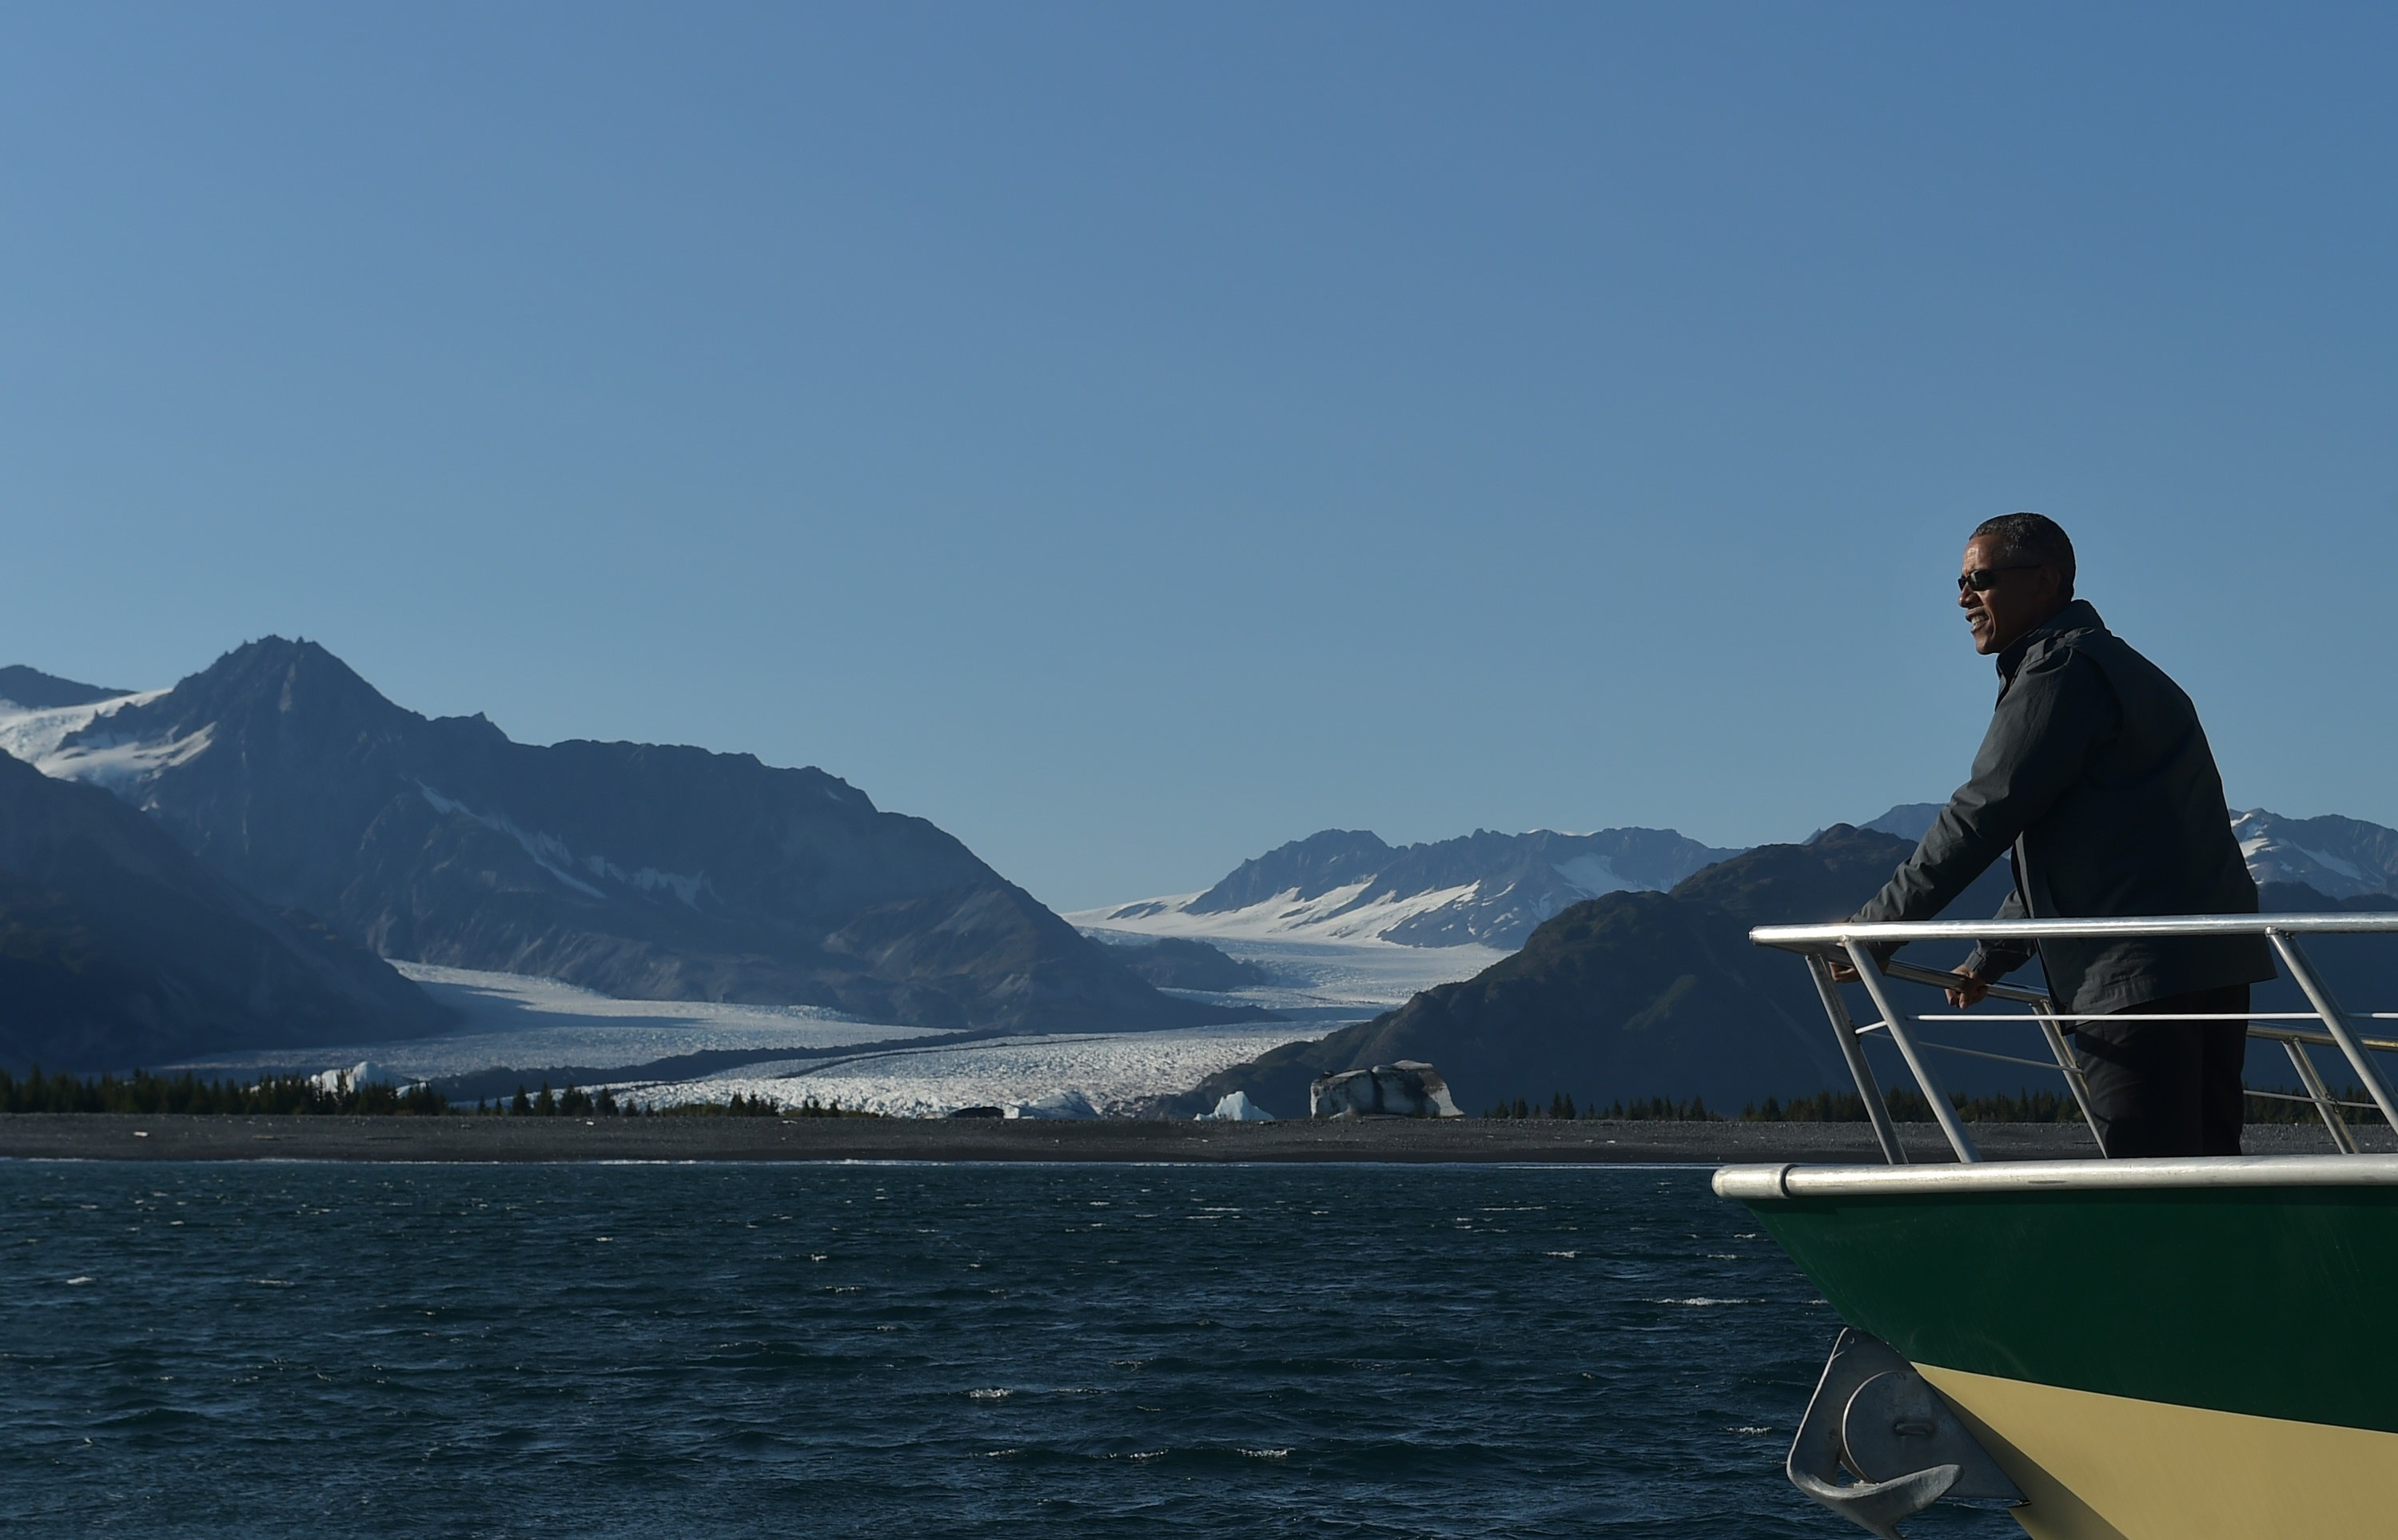 US President Barack Obama looks at Bear Glacier during a boat tour of the Kenai Fjords National Park on September 1, 2015 in Seward, Alaska. (Getty)